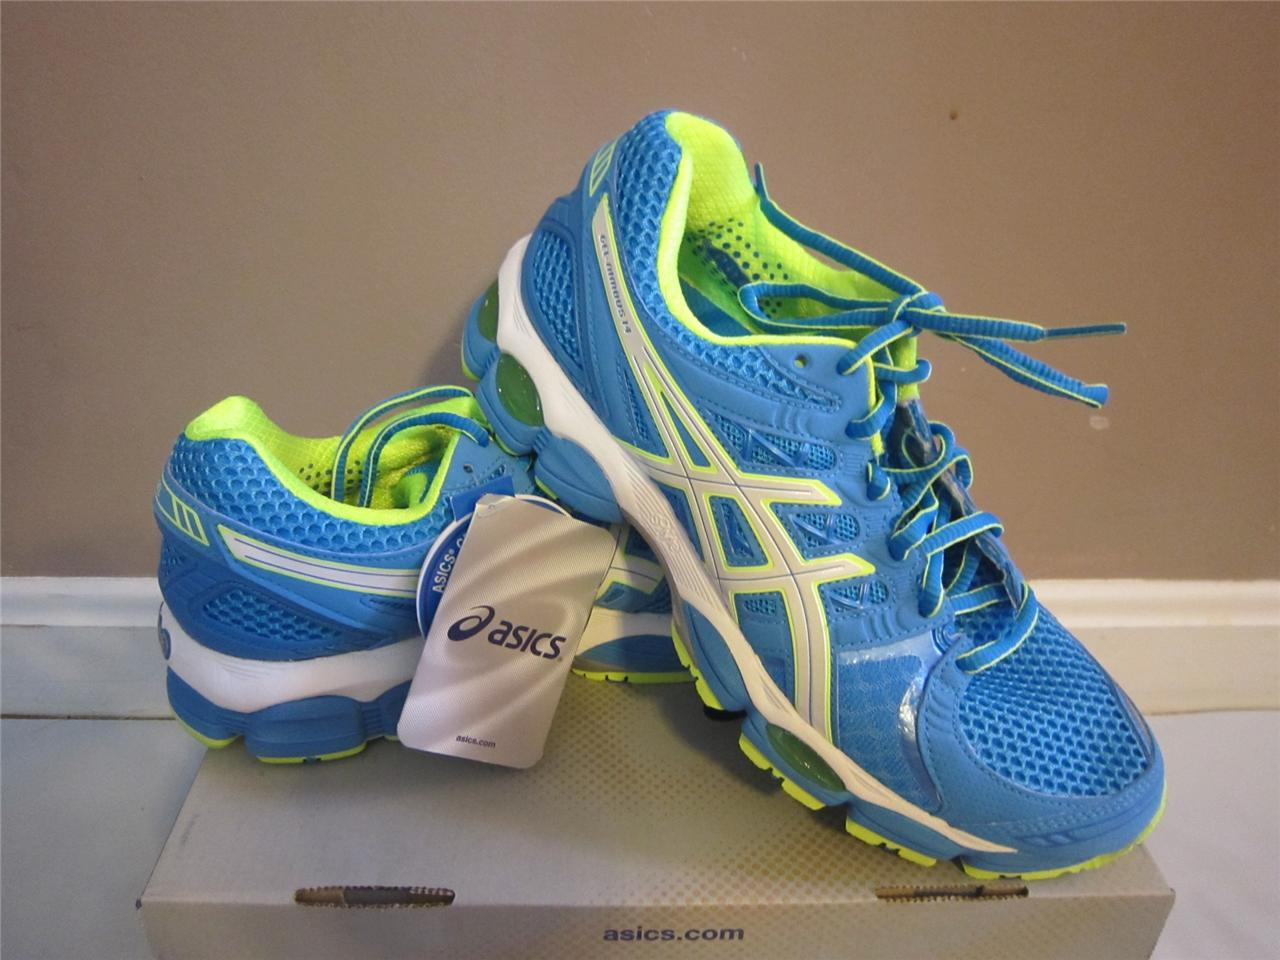 Buy-Best-Quality-Asics-8th-VIII-Eighth-Classic-Women-Colorful-Orange-Blue-Running-Shoes-On-Sale-1253_1.jpg